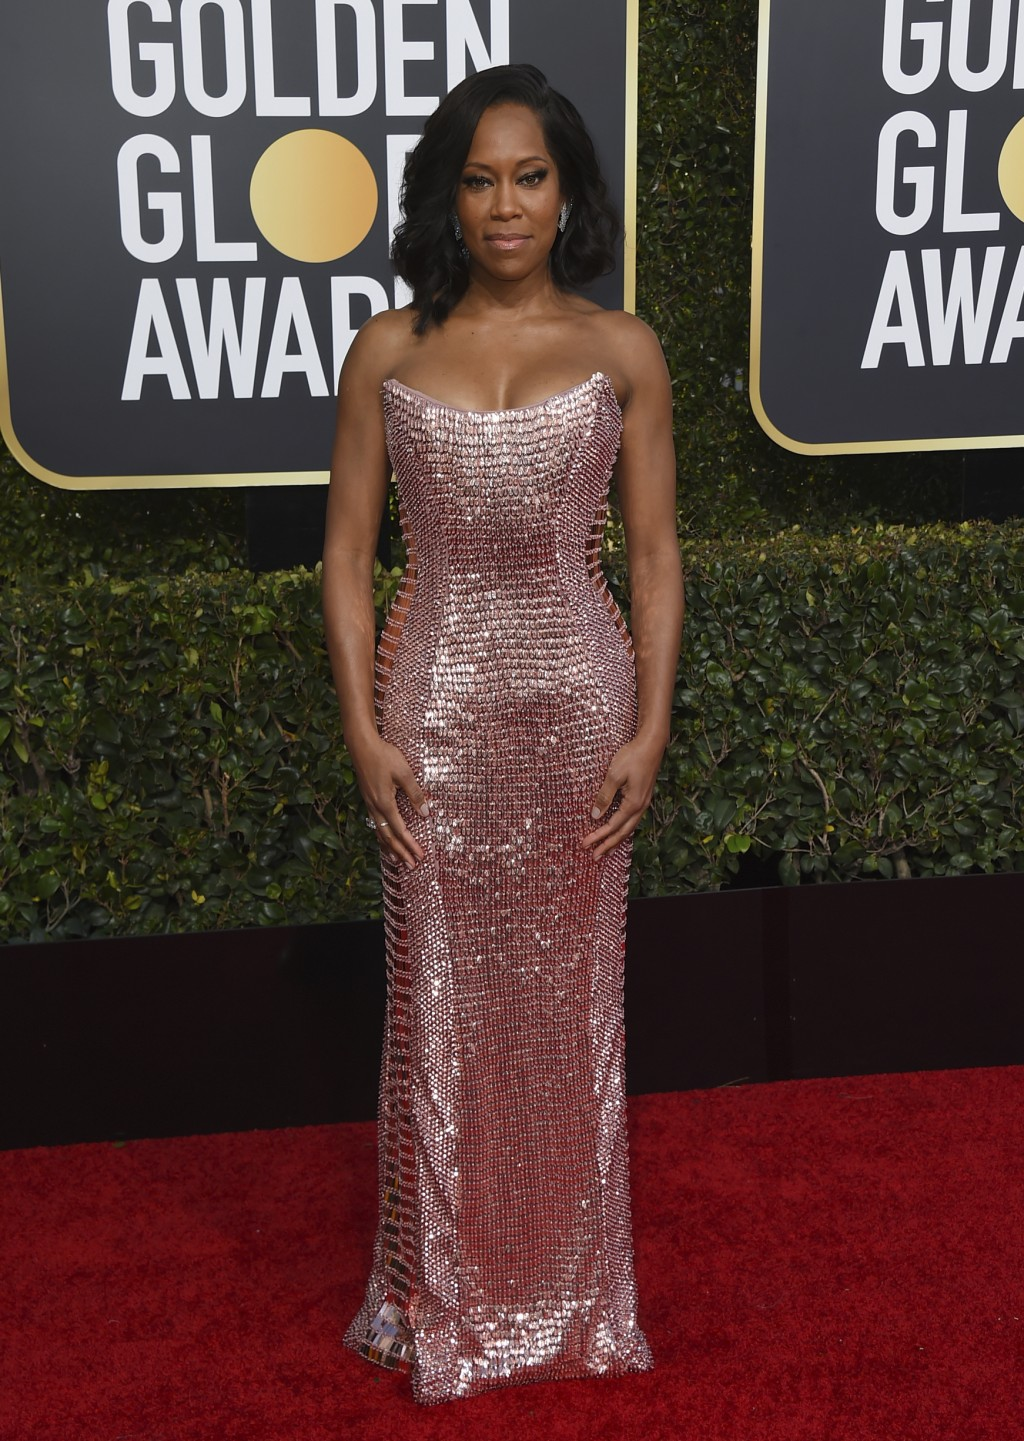 Regina King arrives at the 76th annual Golden Globe Awards at the Beverly Hilton Hotel on Sunday, Jan. 6, 2019, in Beverly Hills, Calif. (Photo by Jor